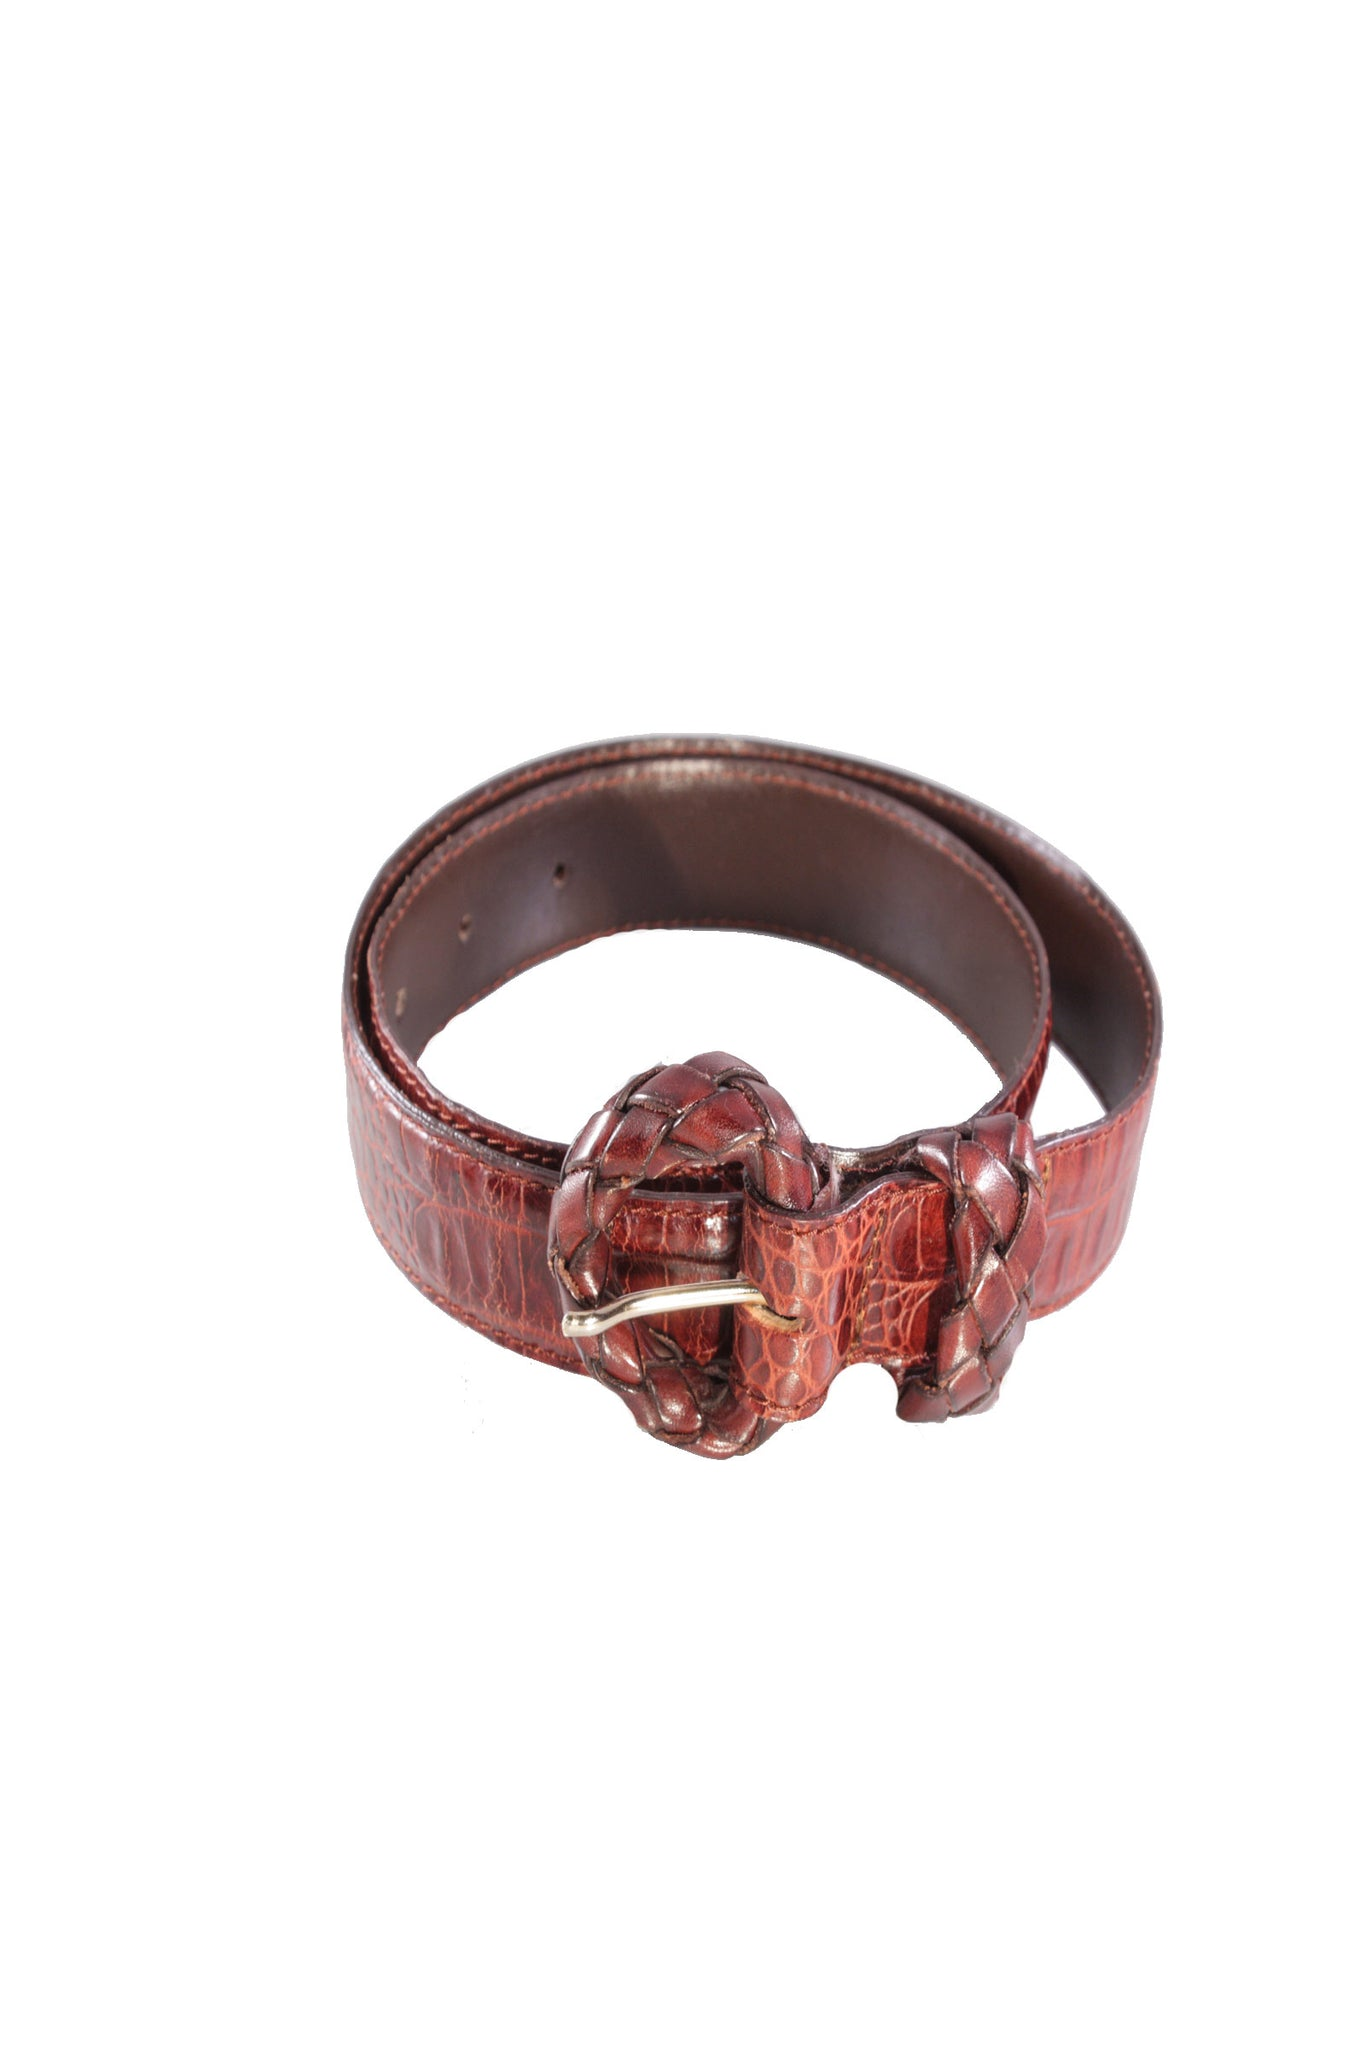 Vintage leather croc belt - SoLovesVintage